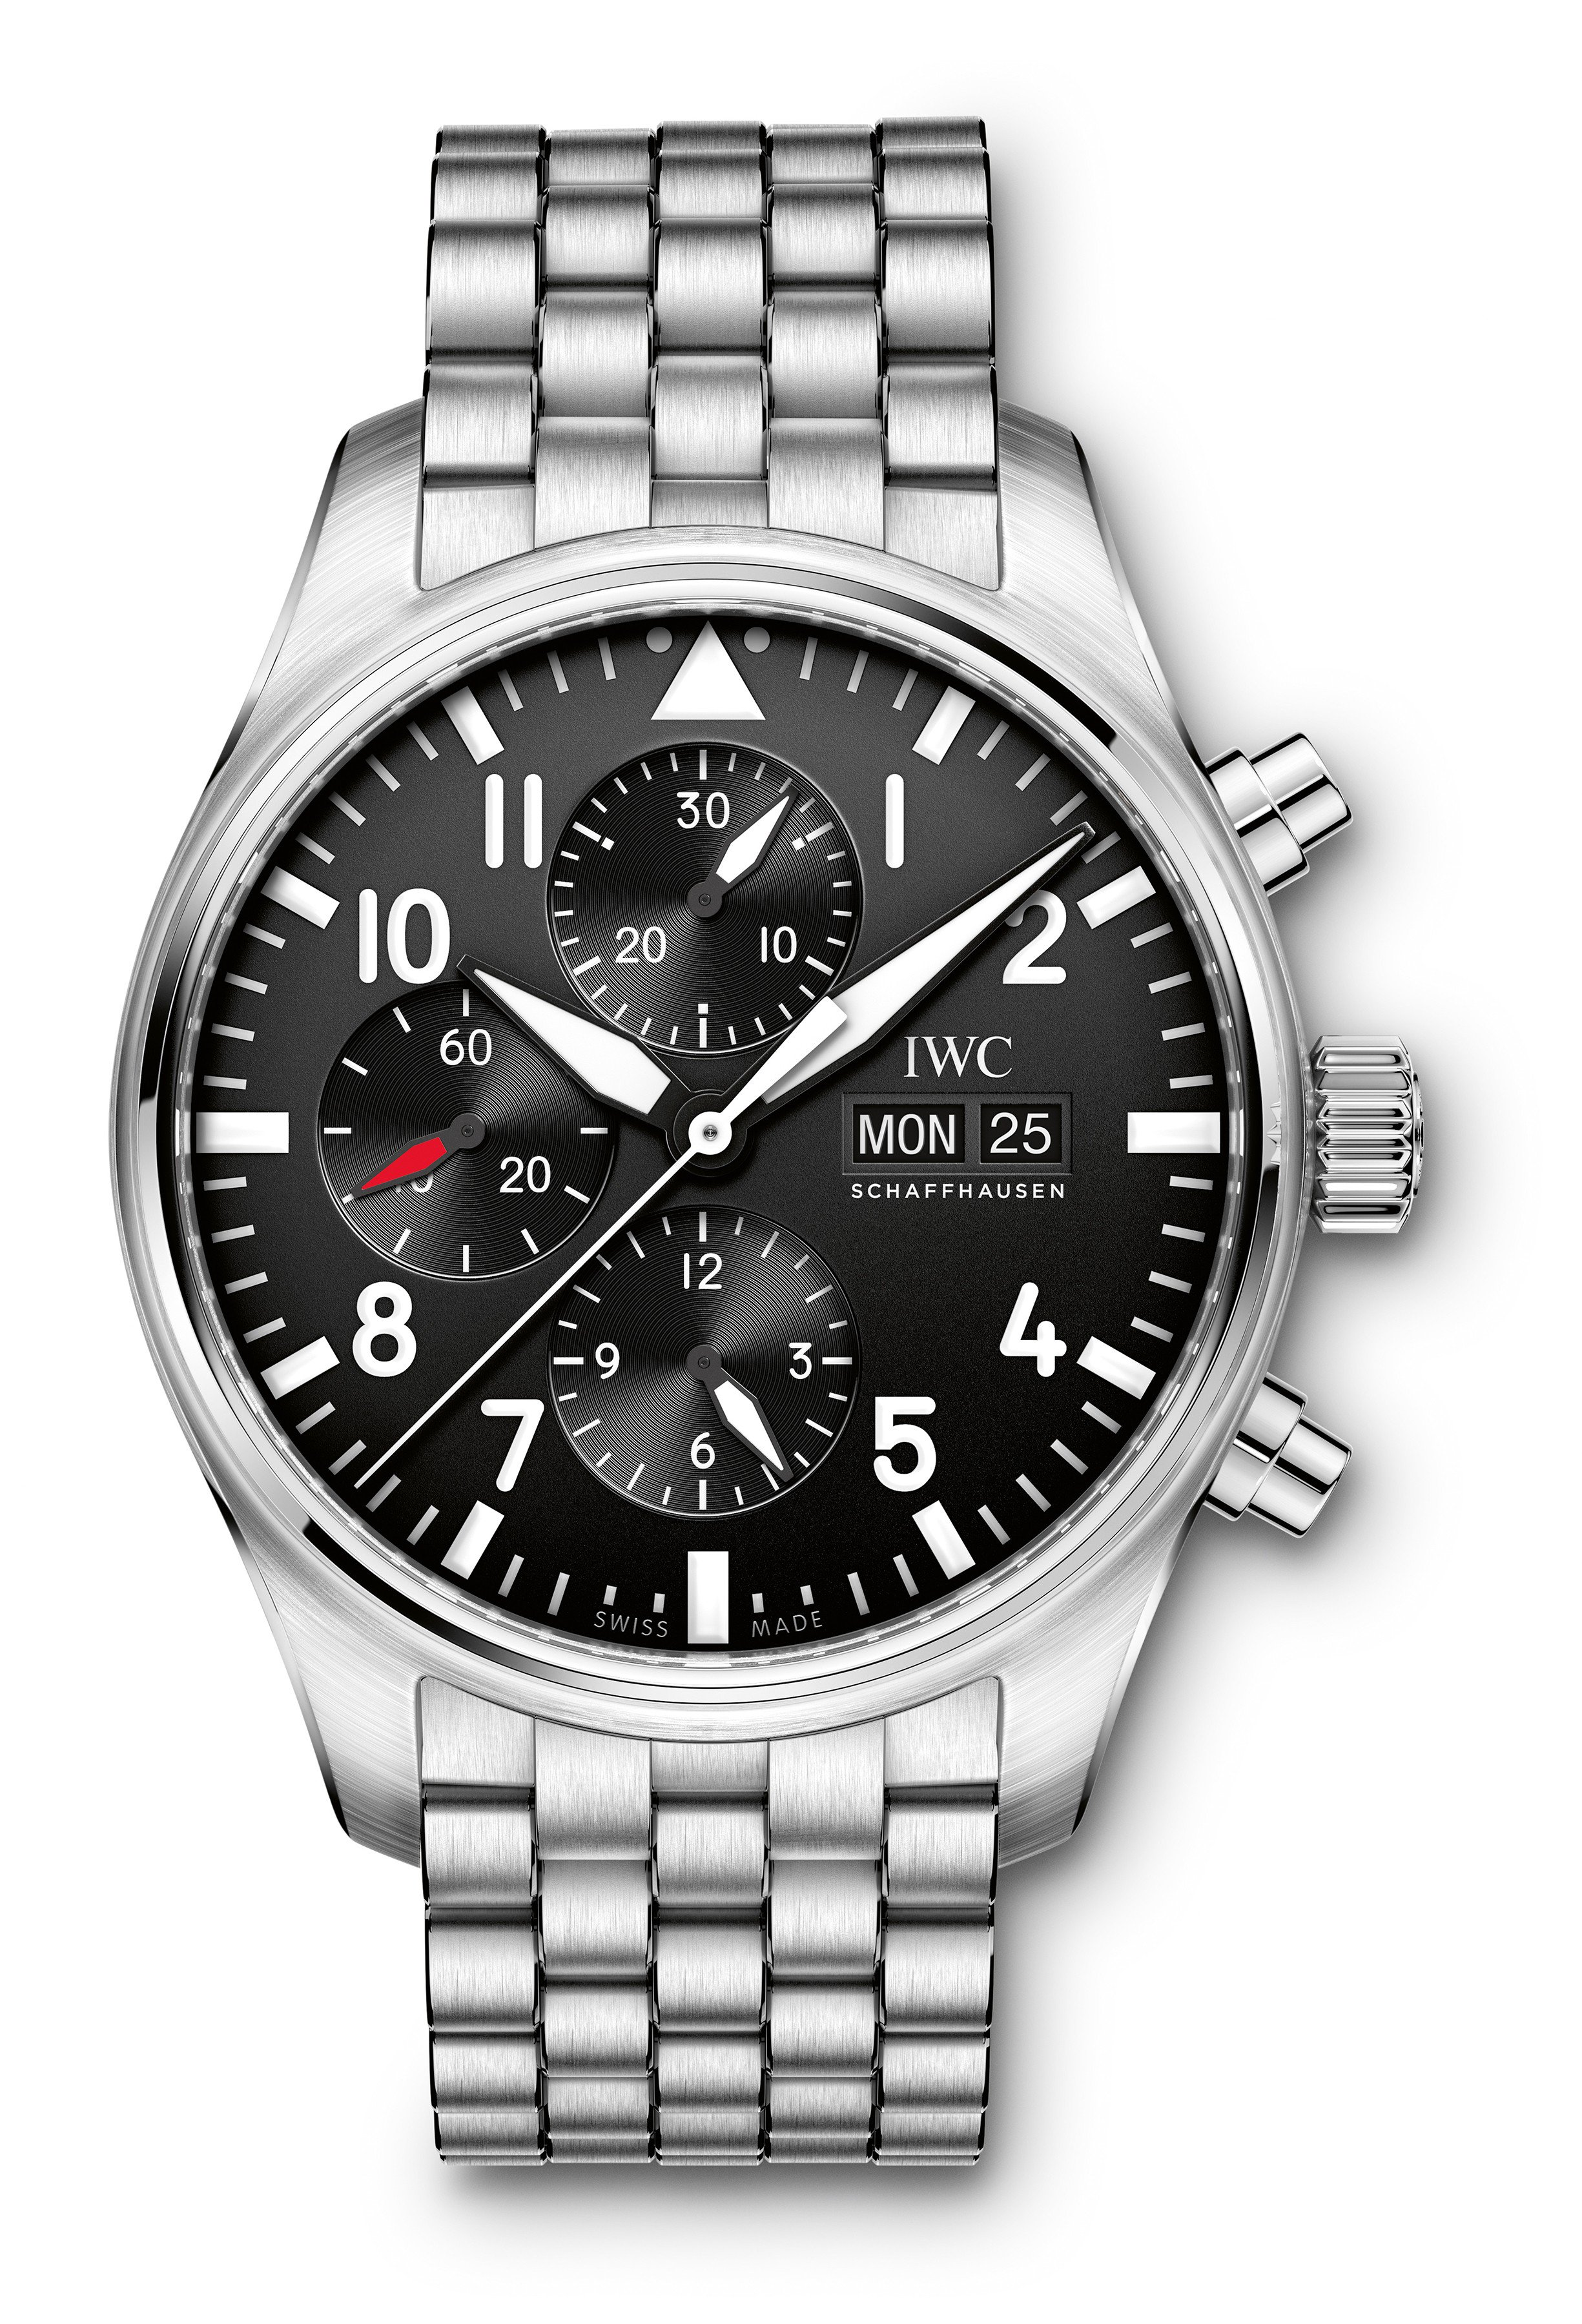 IWC Pilots Watch.jpg